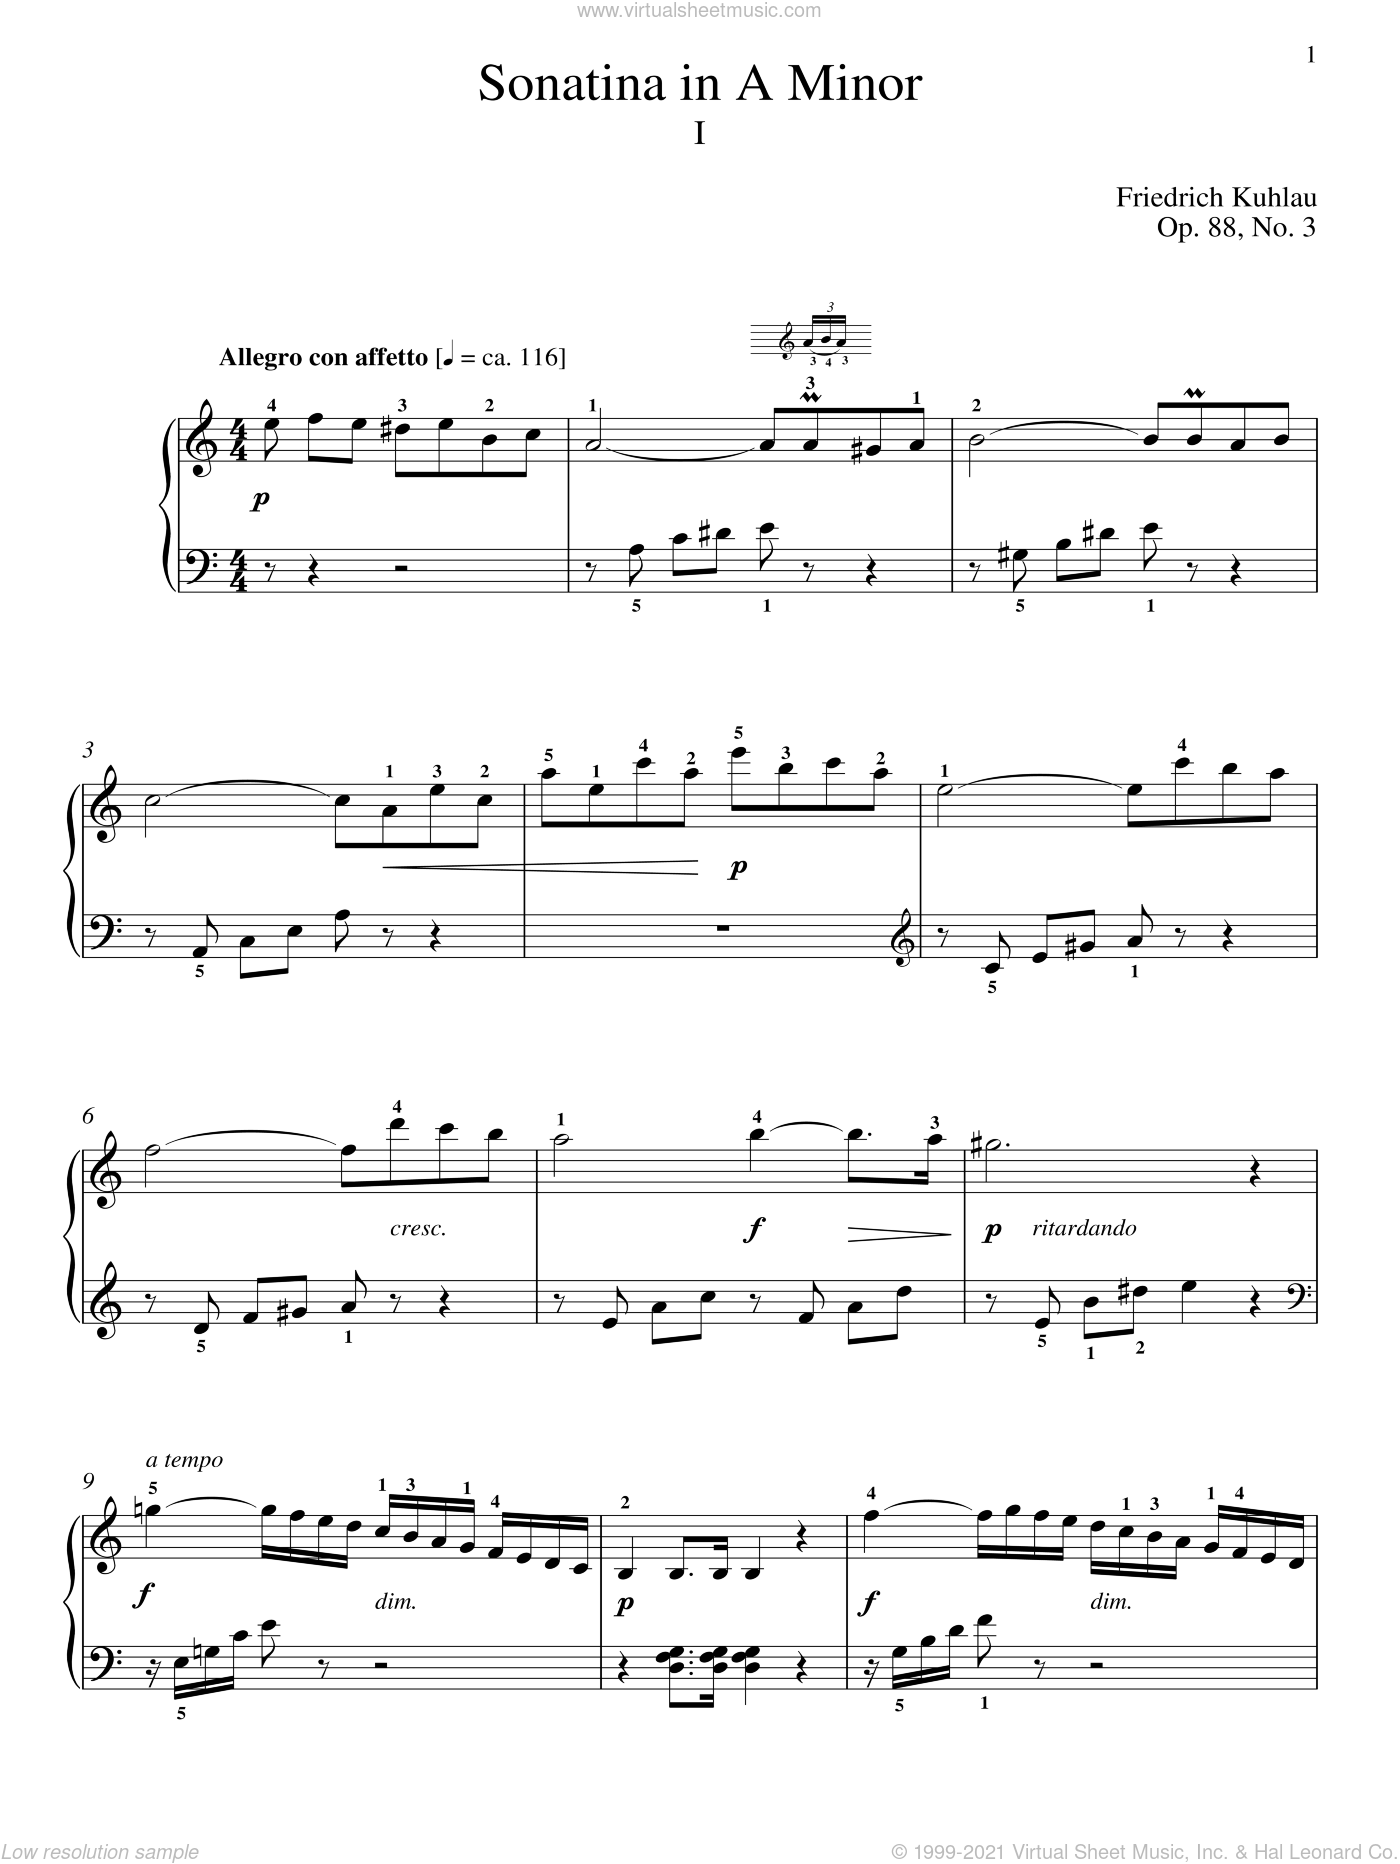 Sonatina In A Minor, Op. 88, No. 3 sheet music for piano solo by Friedrich Daniel Rudolf Kuhlau and Jennifer Linn